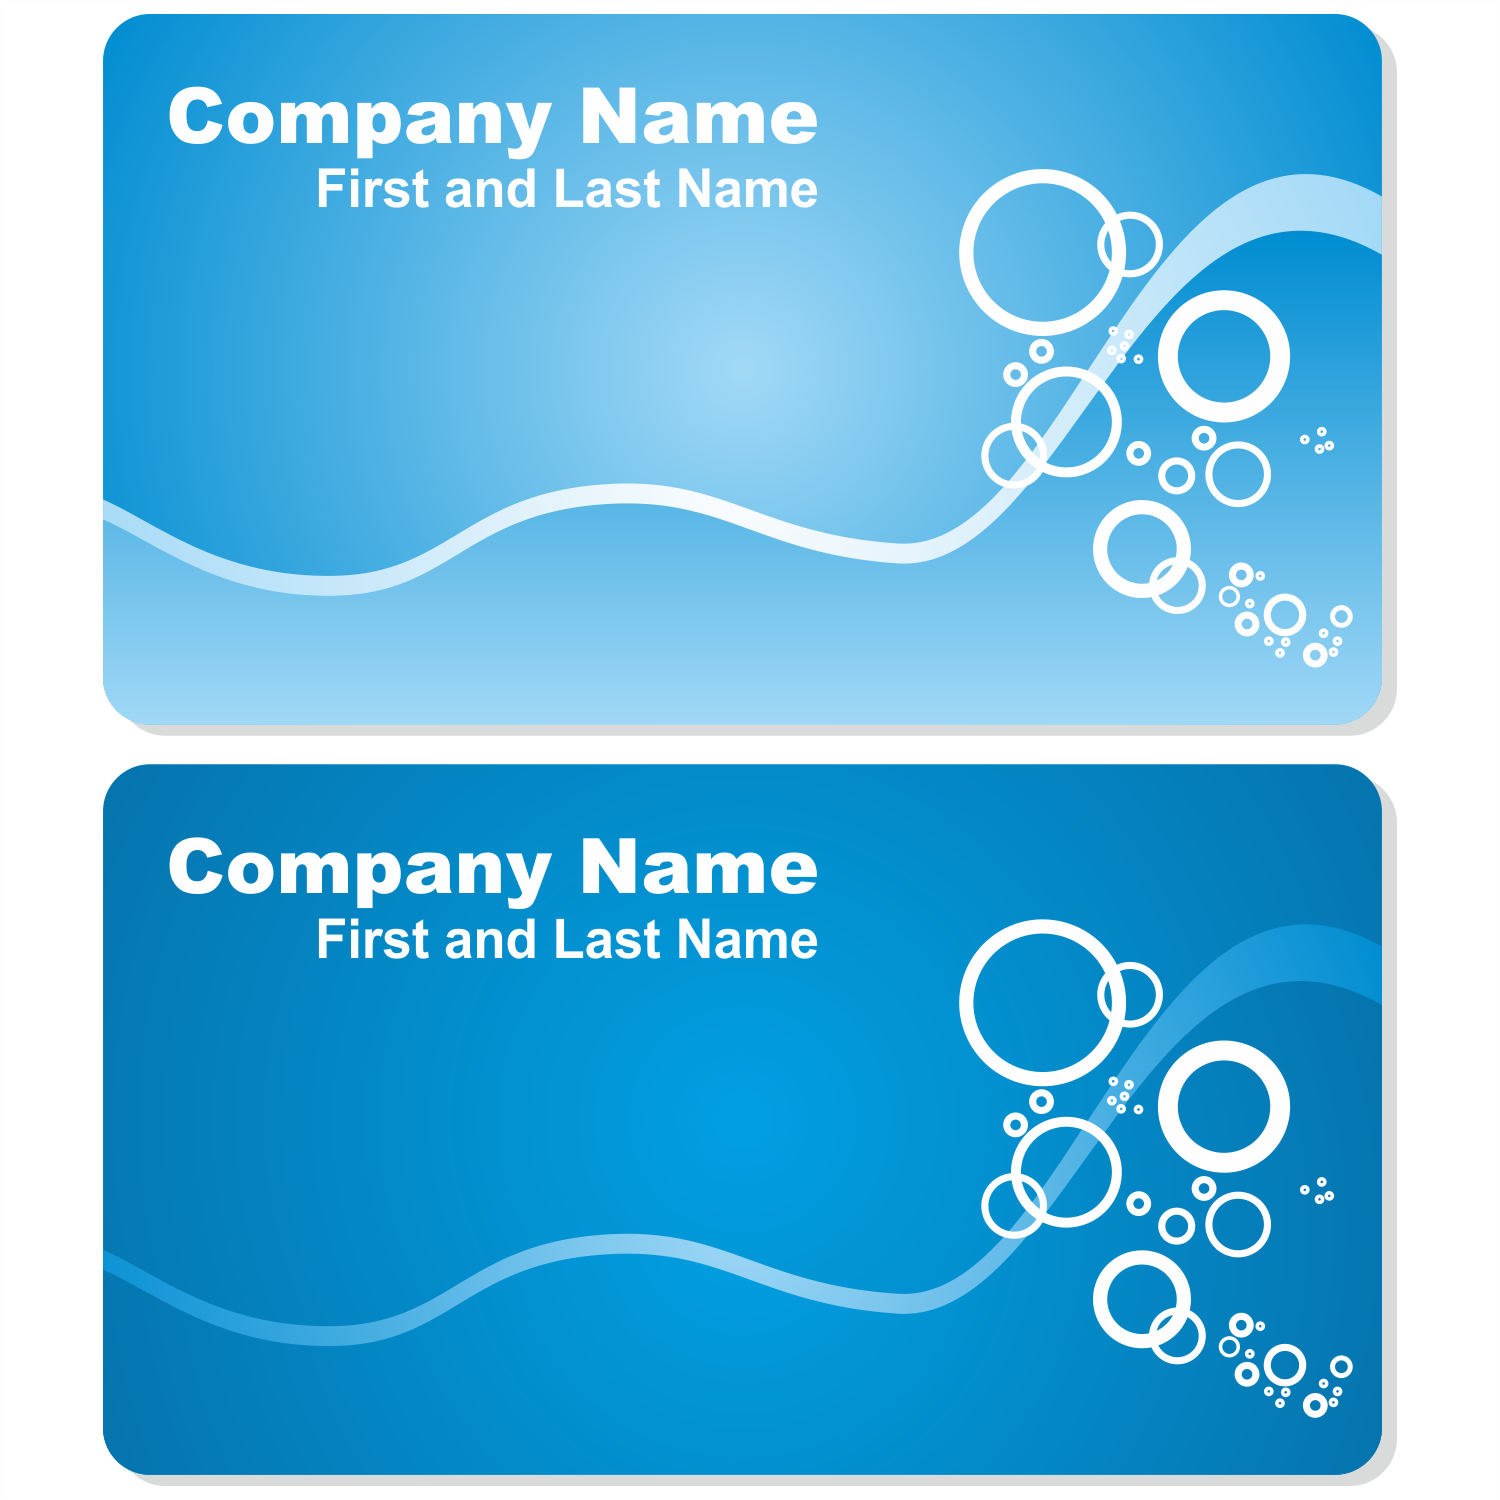 Free online business card template business card sample free online business card template fbccfo